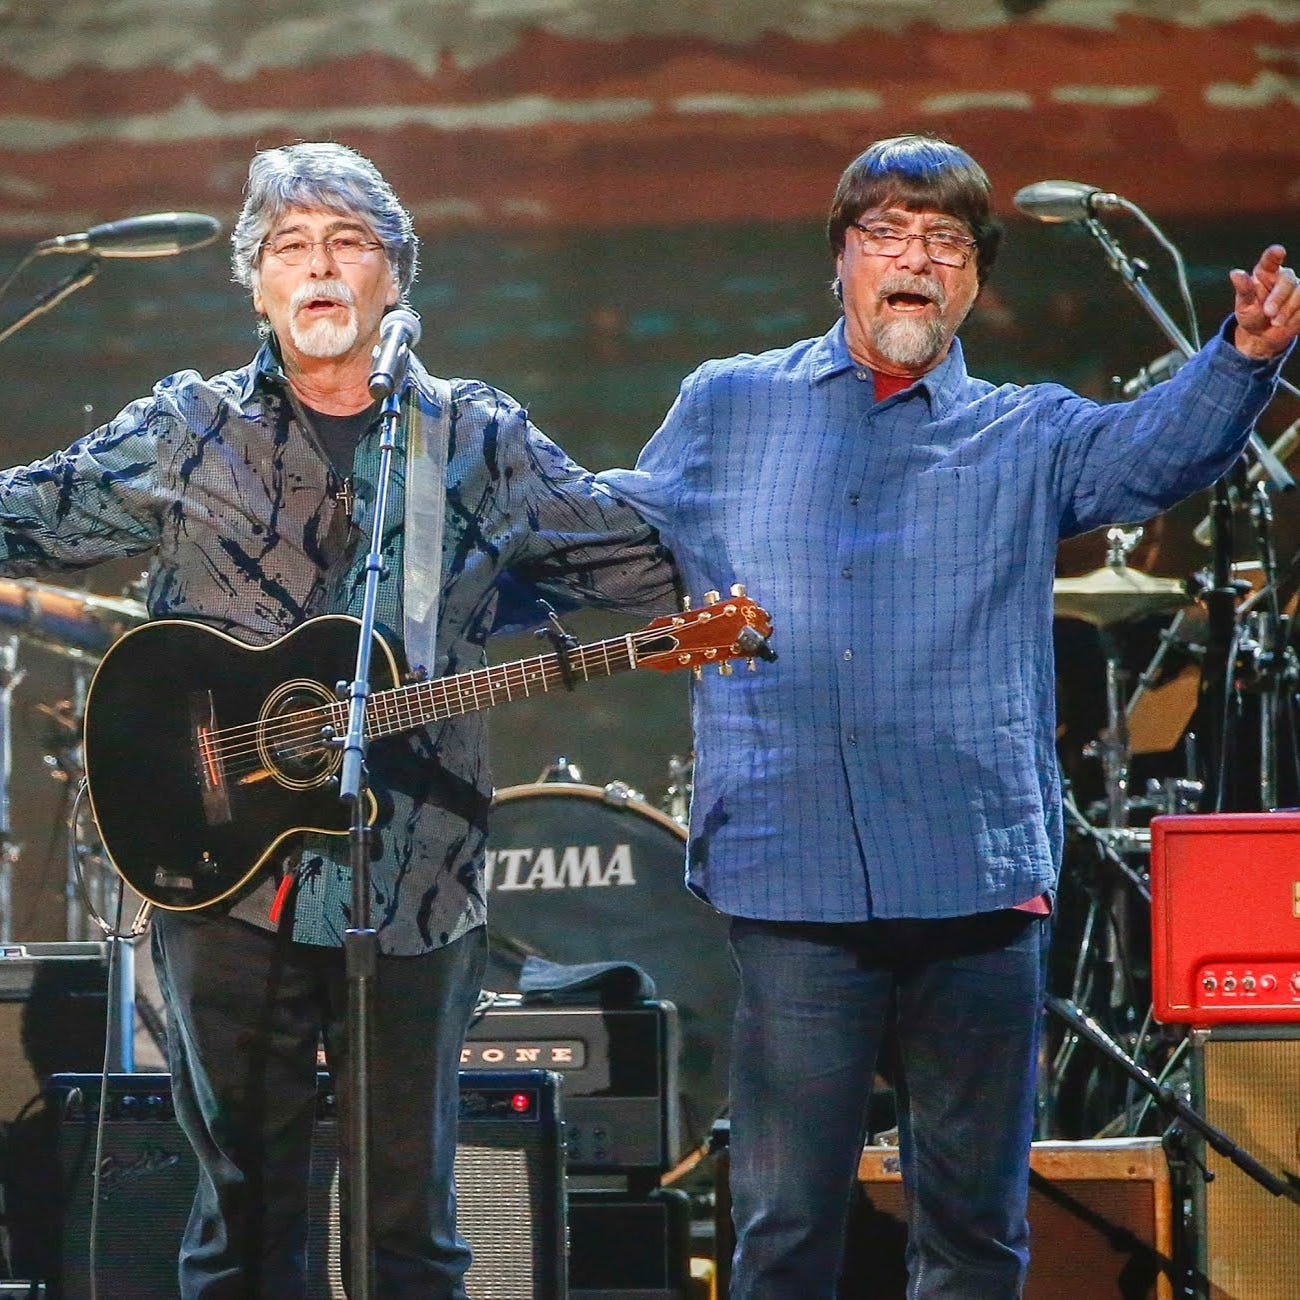 Country band Alabama will celebrate 50th anniversary with Indianapolis show